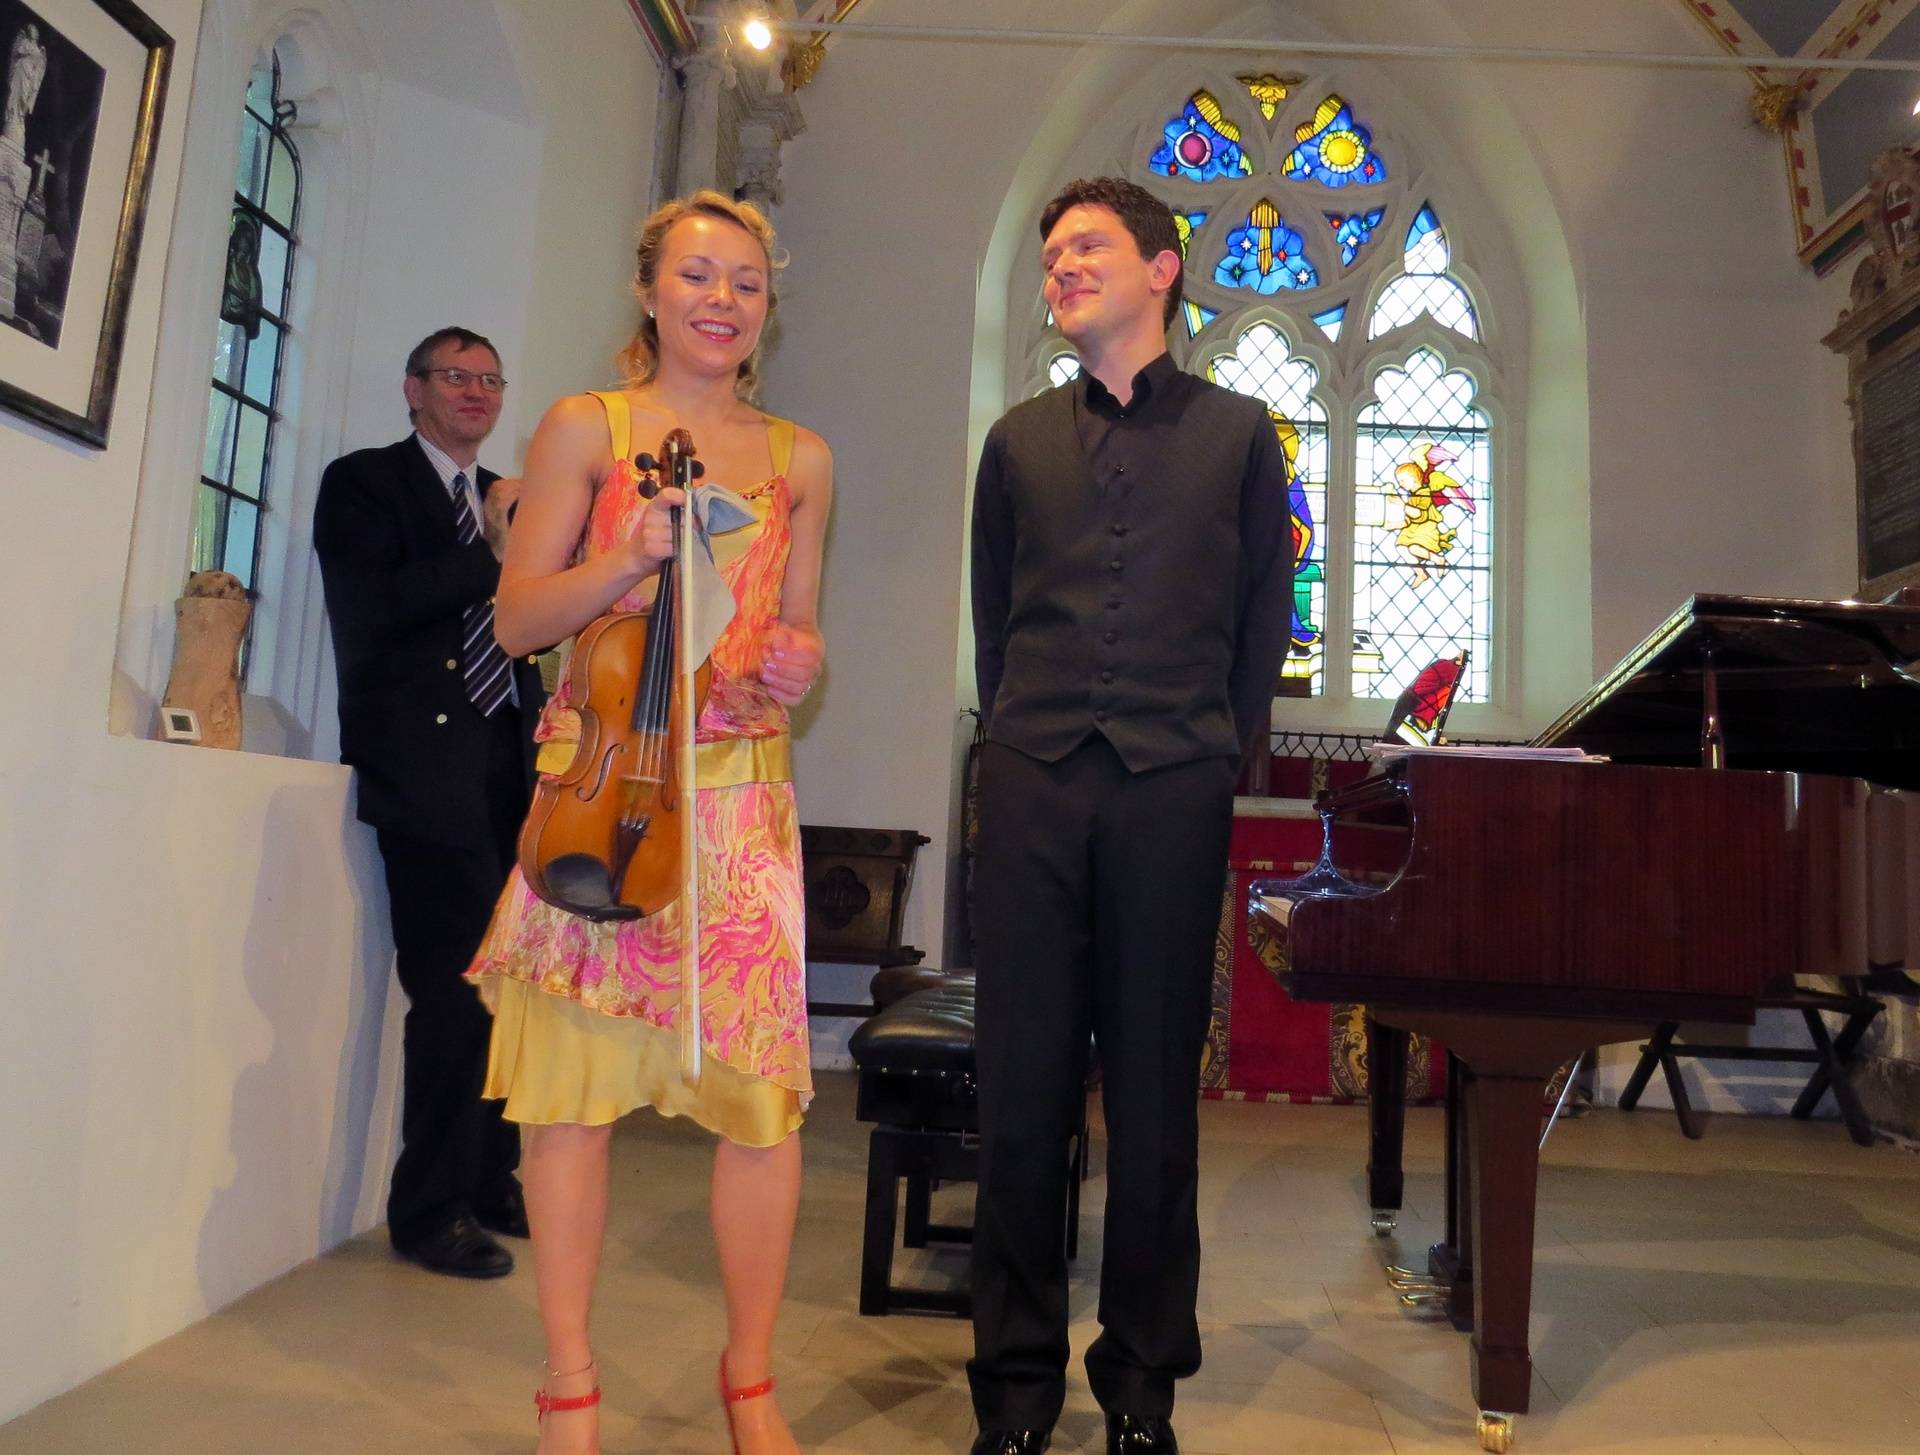 Recital at St Mary's Perivale